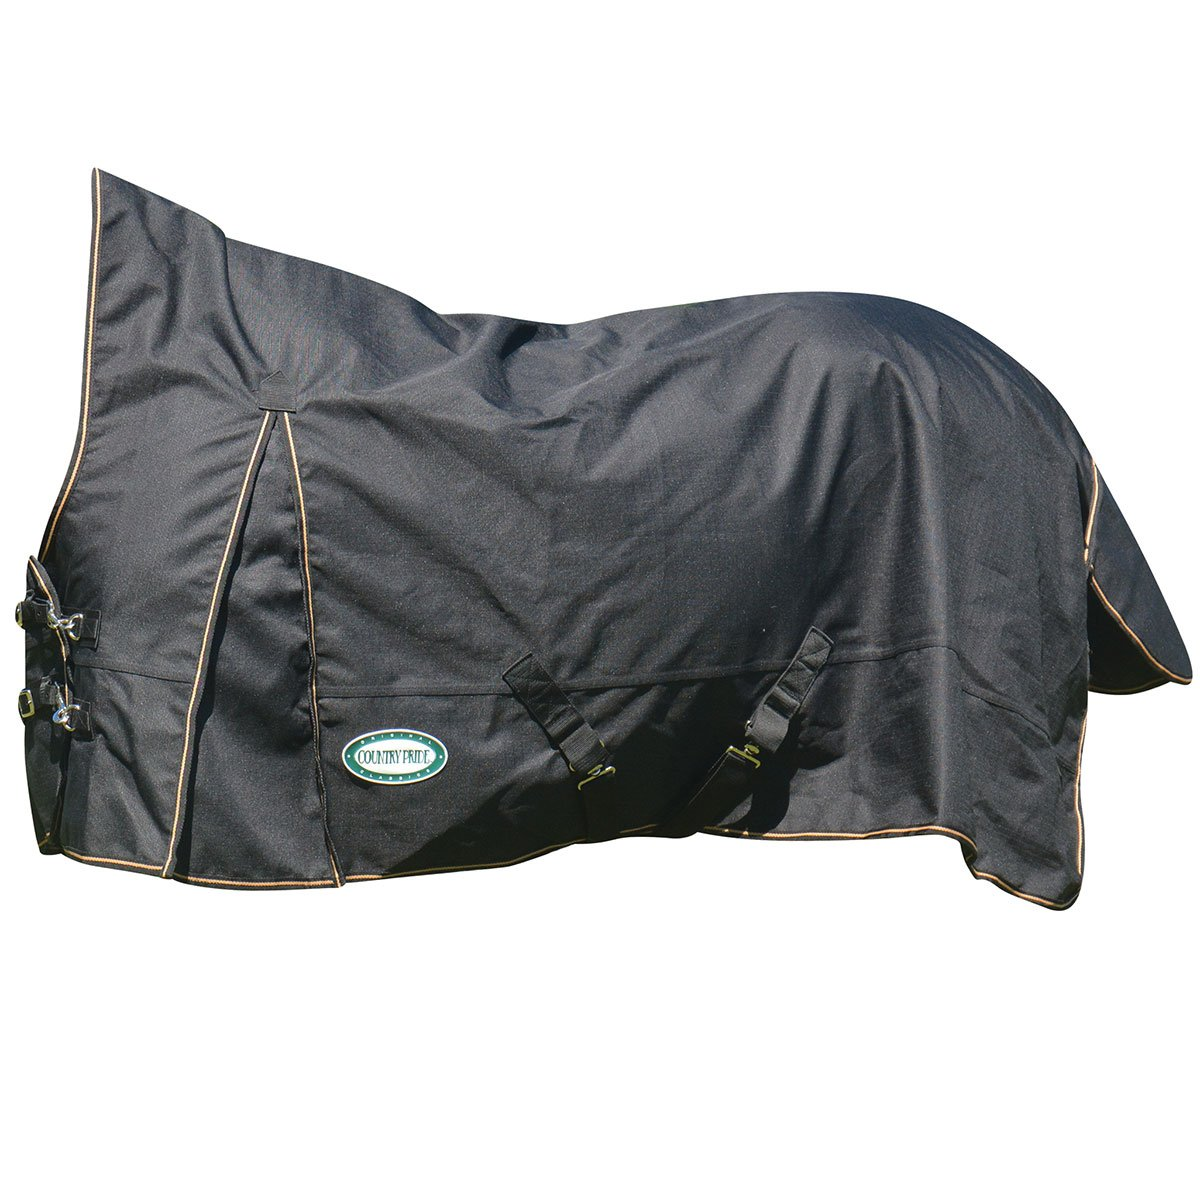 Country Pride 1200D Paladin High Neck Heavyweight Turnout Horse Blanket